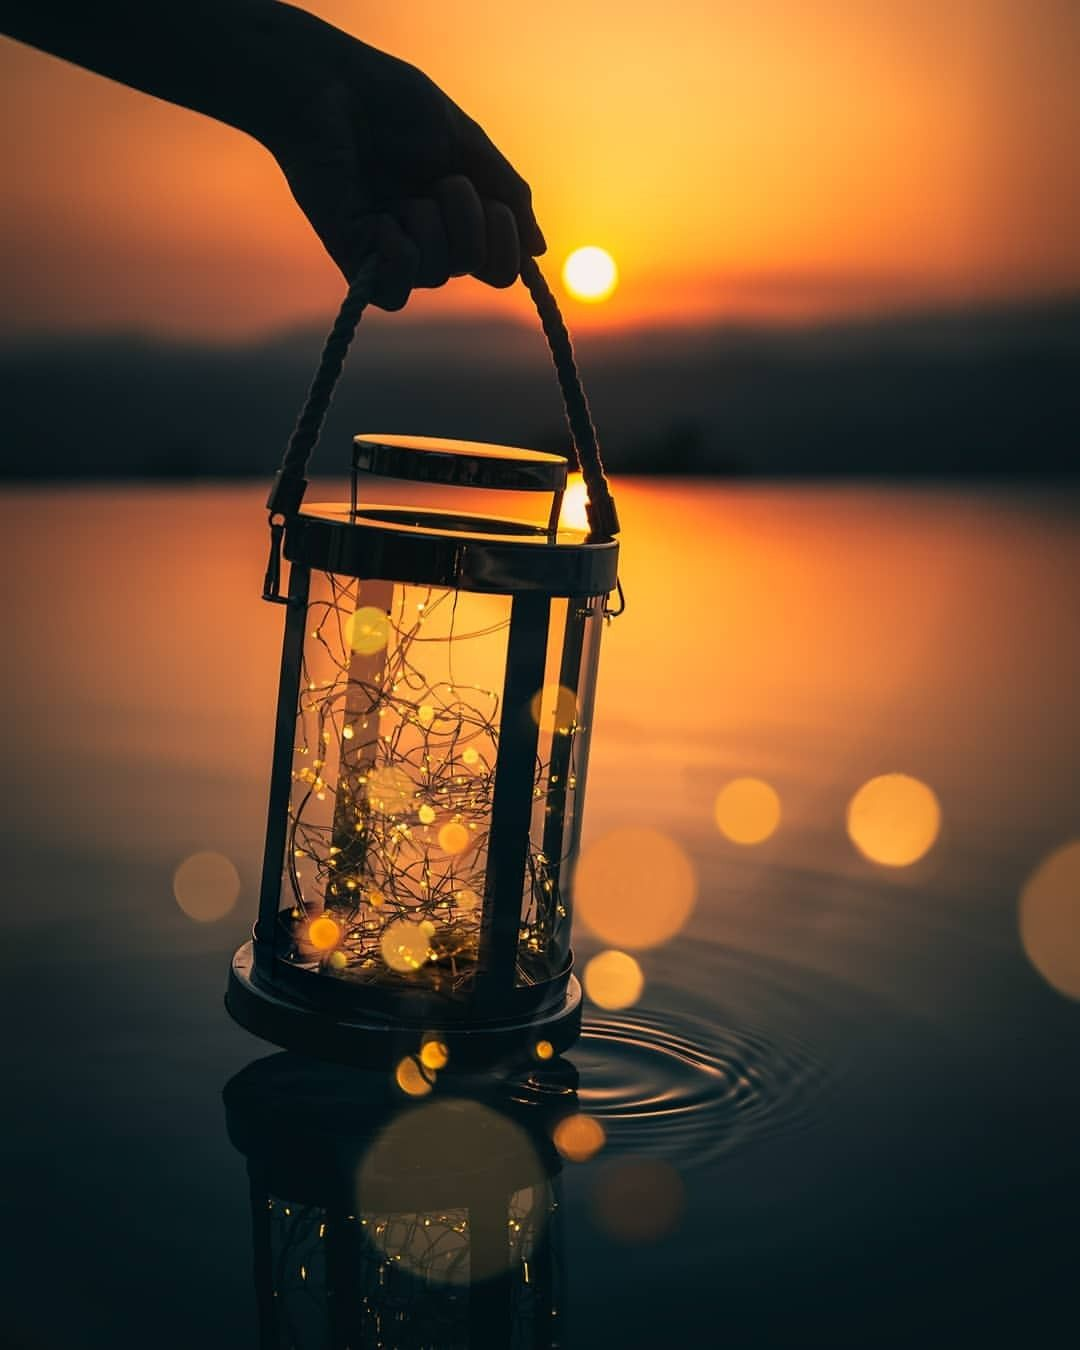 Turn The Lights On C Daniel Vieira A Beautiful Photography Nature Photography Beautiful Wallpapers